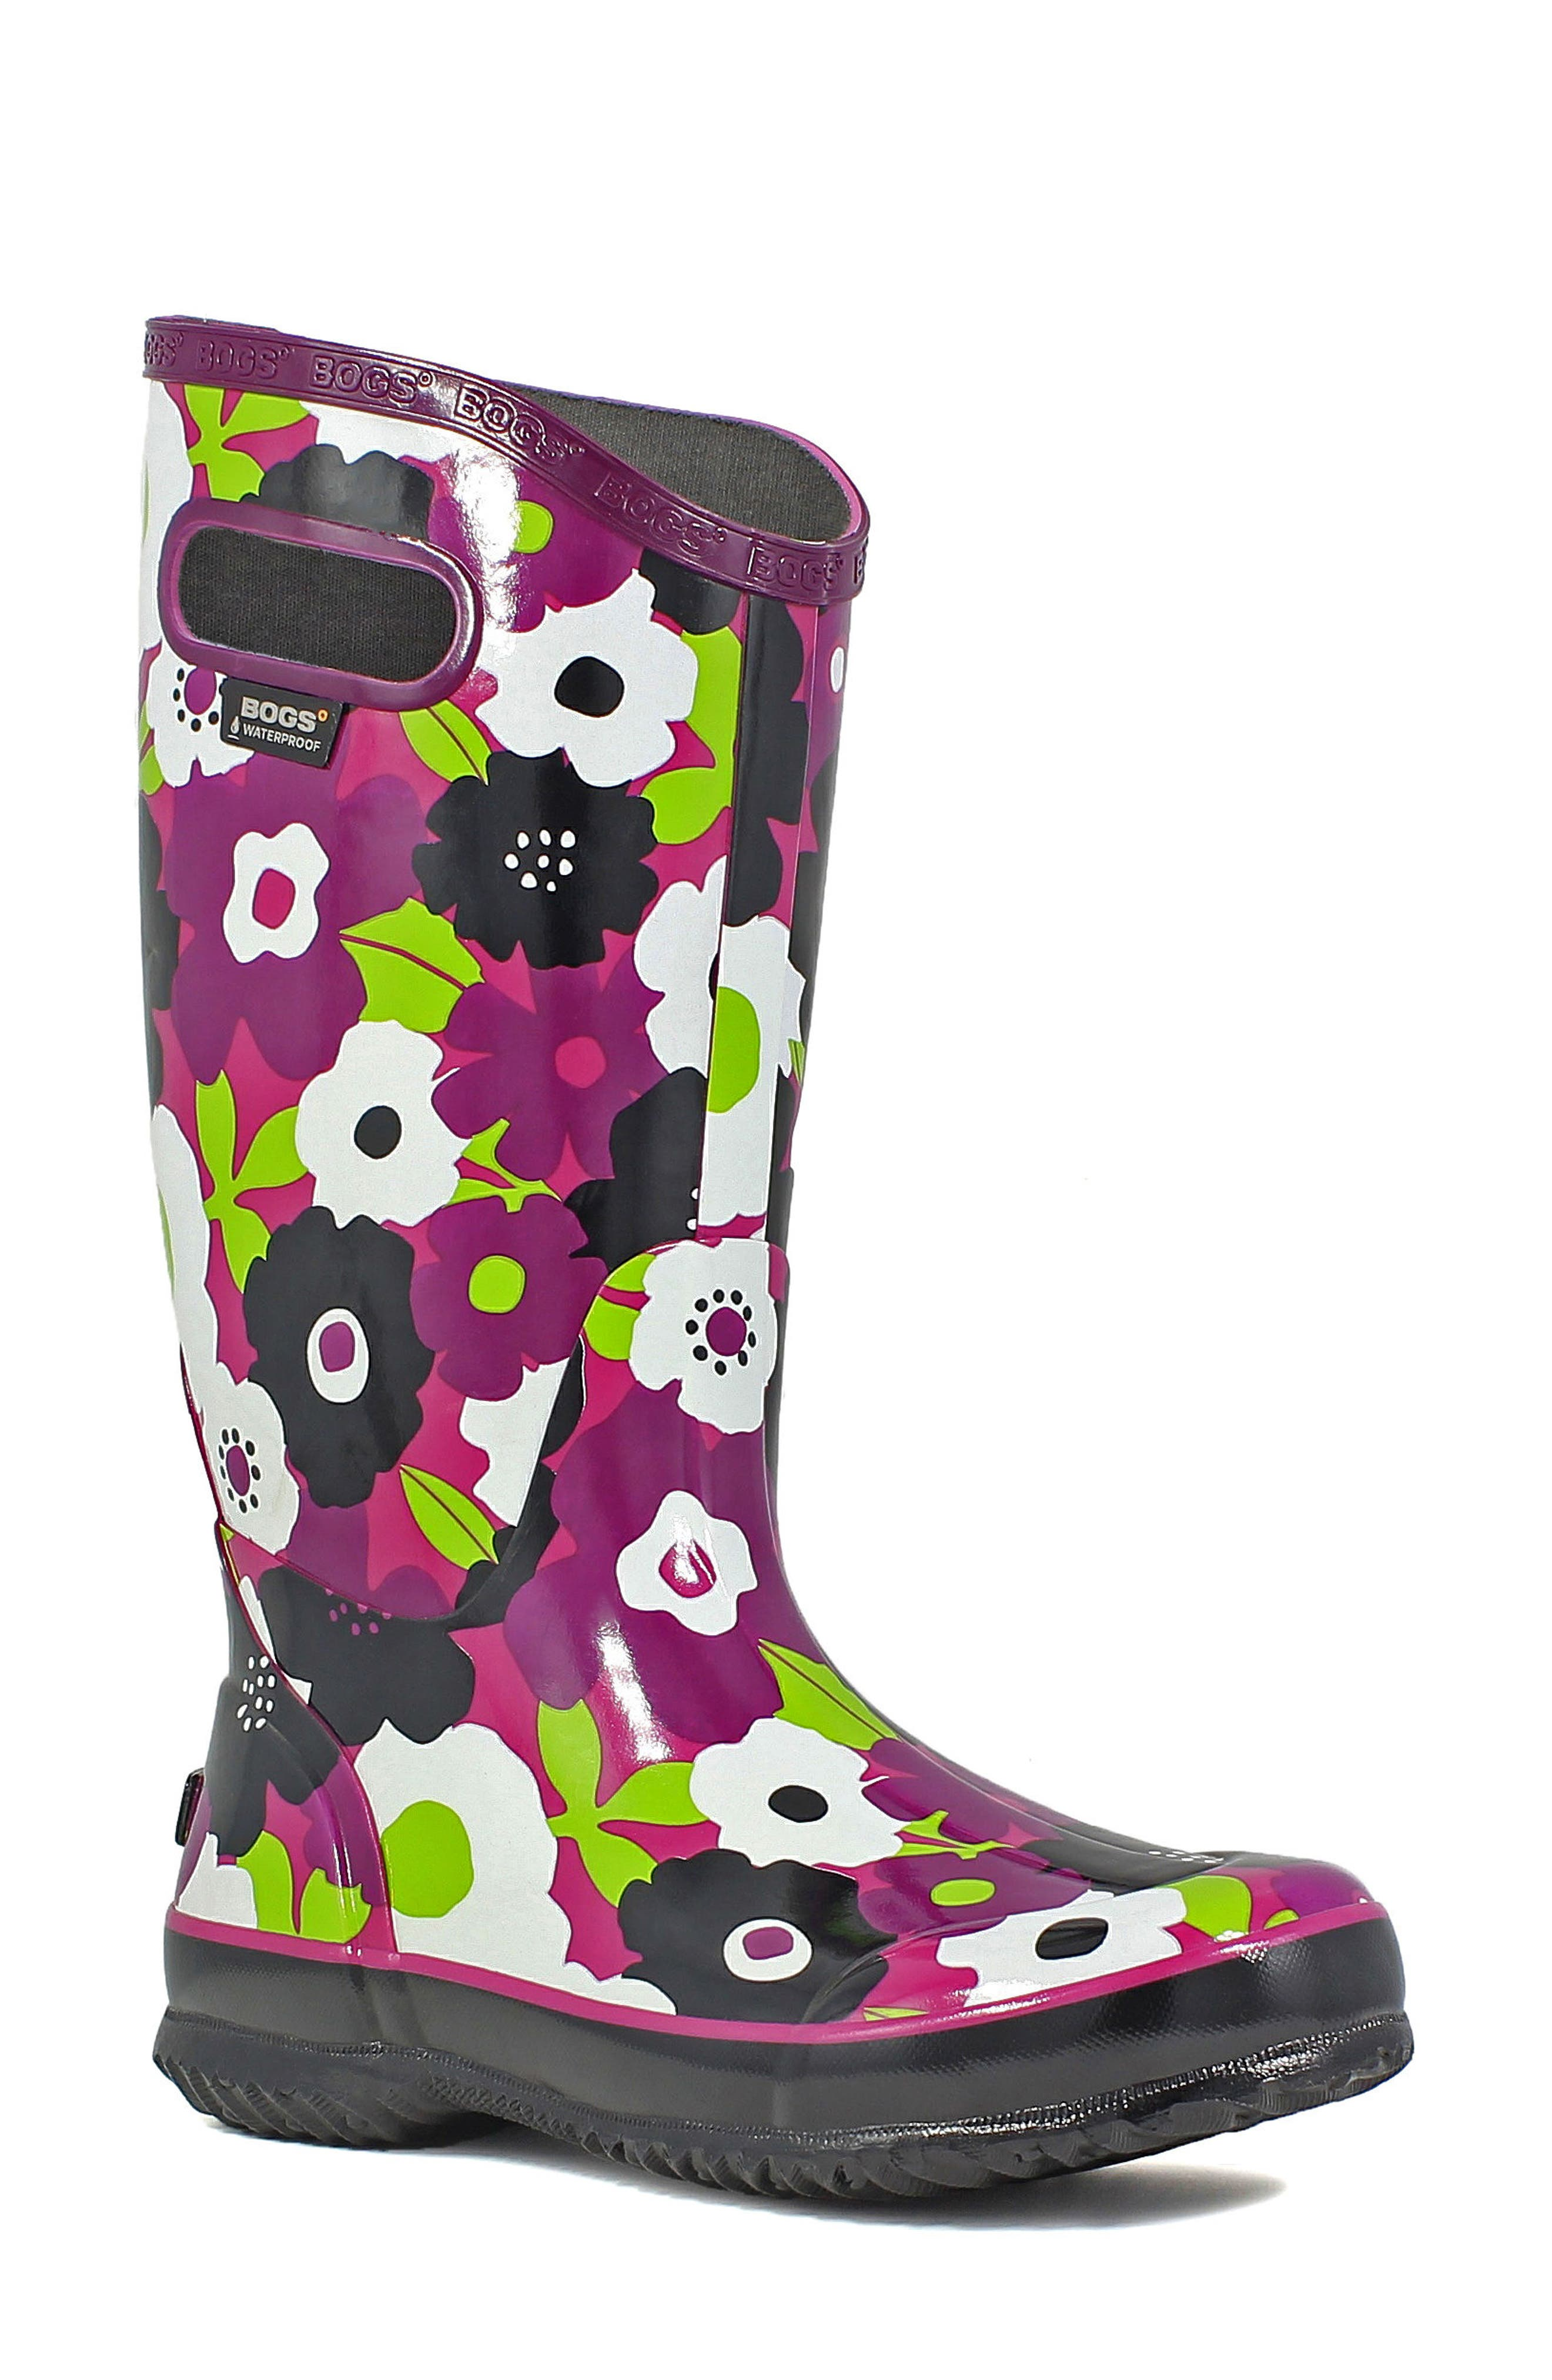 BOGS 'Spring Flowers' Graphic Print Waterproof Rain Boot